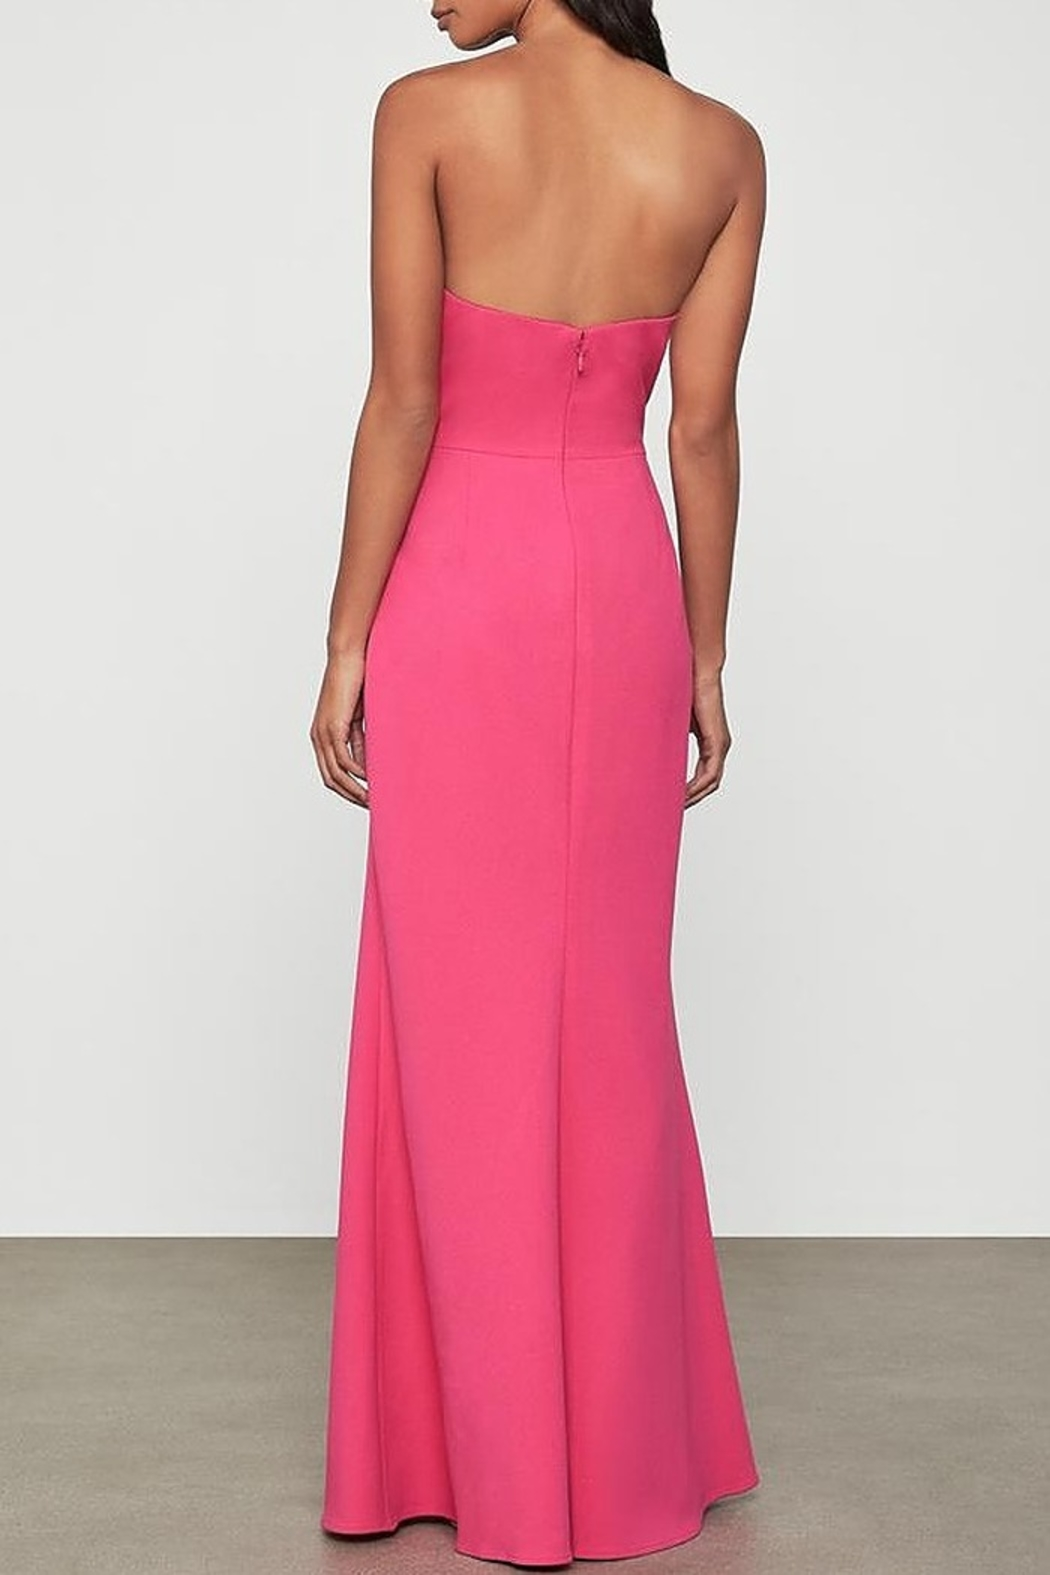 BCBG MAXAZRIA Asymmetric Strapless Gown with Slit - Side Cropped Image